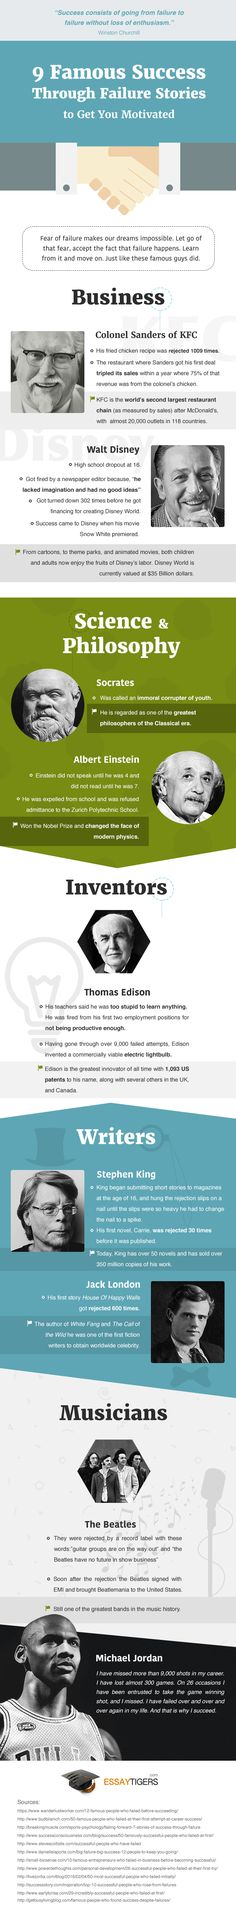 9 Famous Success Trough Failure Stories #infographic #SuccessStories #Business